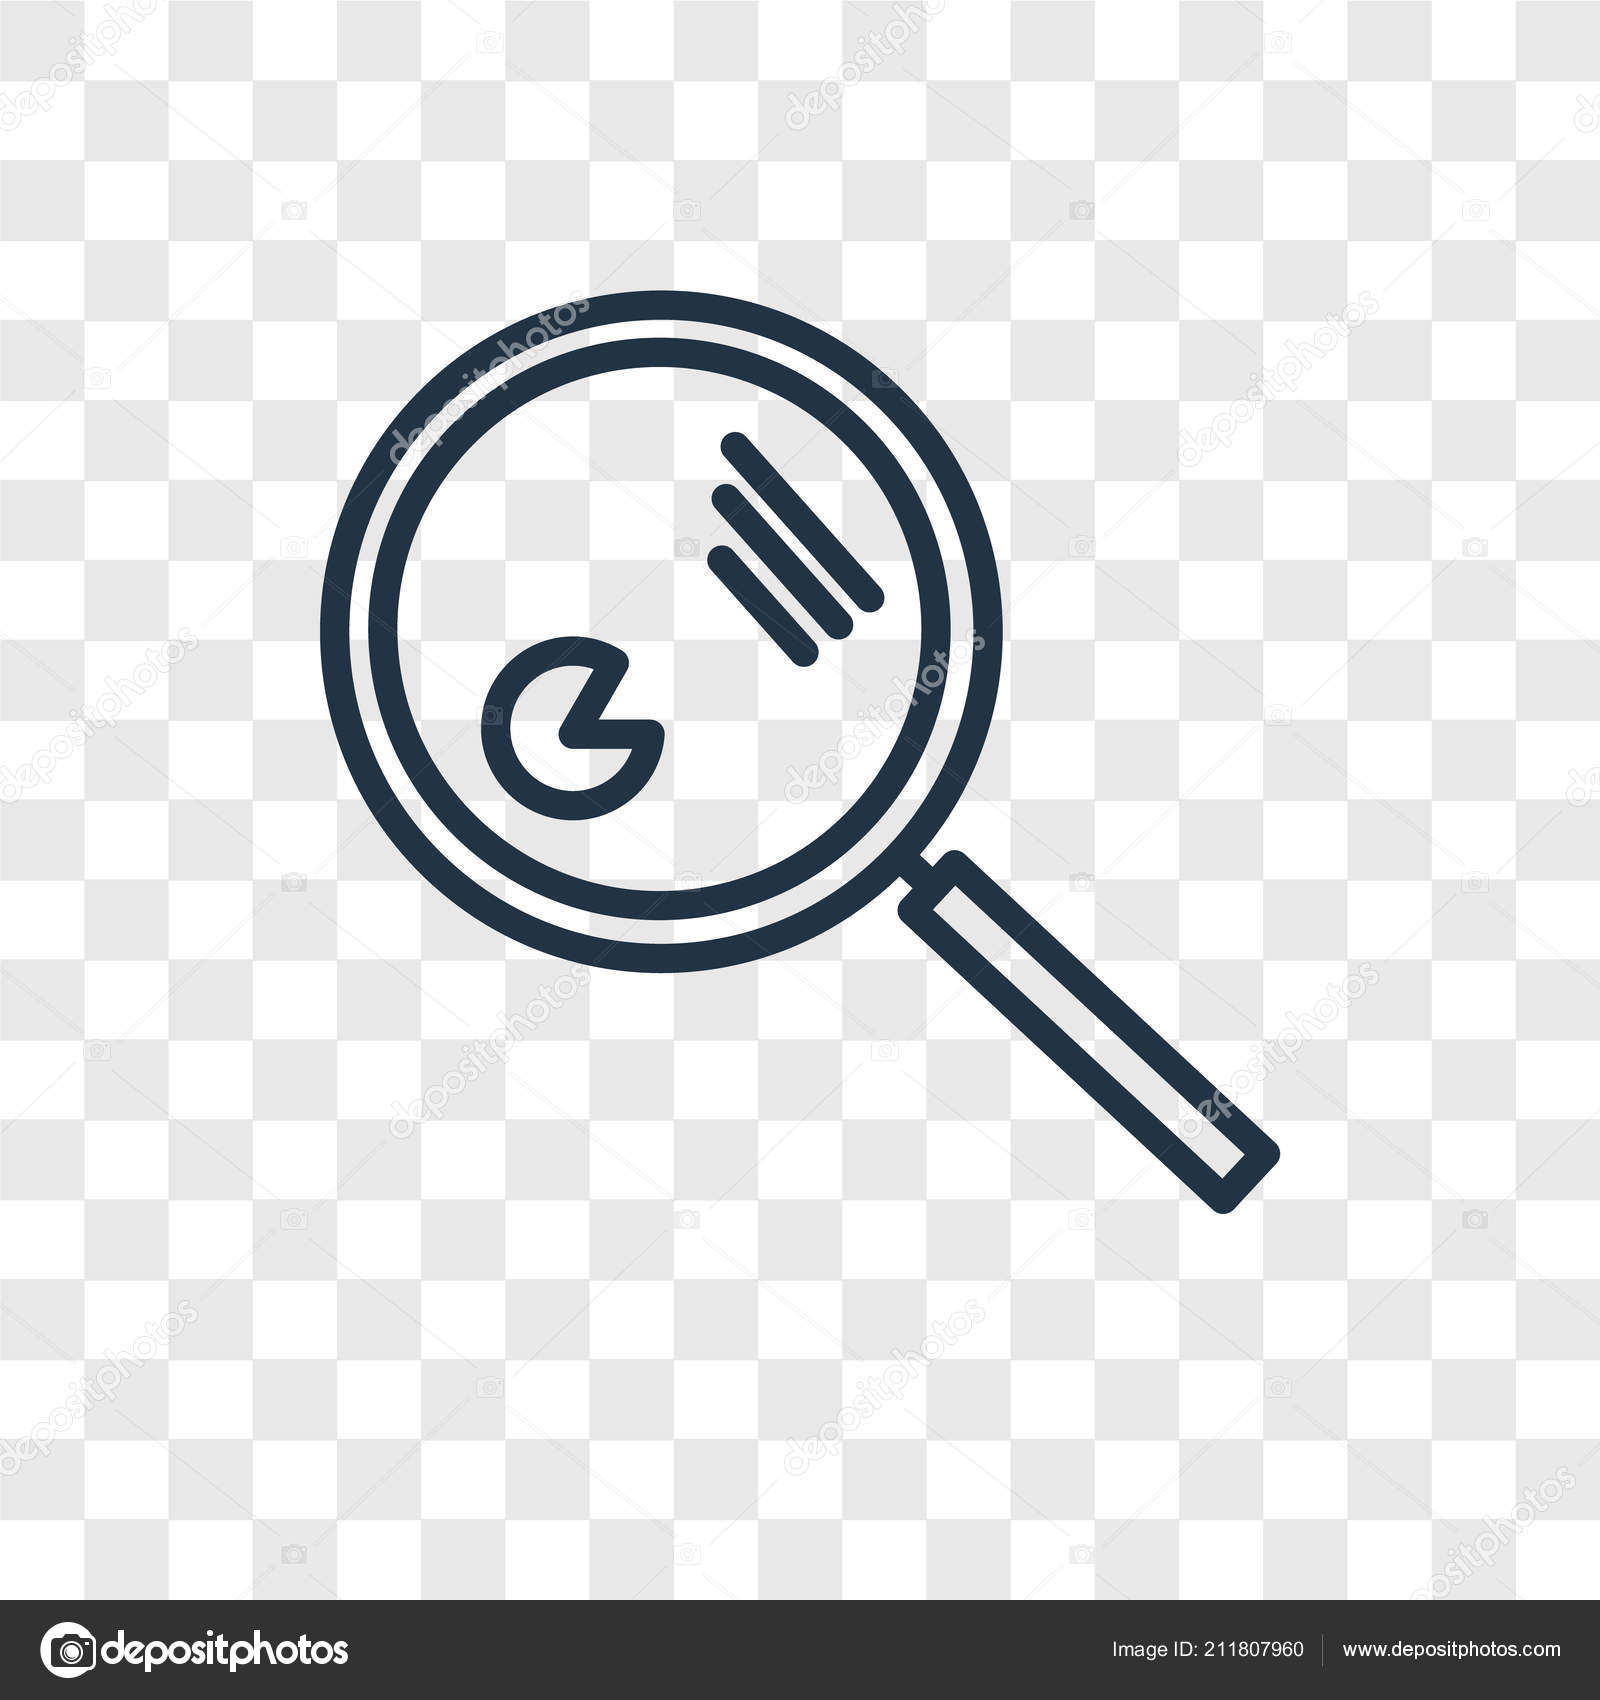 analysis vector icon isolated on transparent background analysis logo design stock vector c topvectorstock 211807960 https depositphotos com 211807960 stock illustration analysis vector icon isolated on html